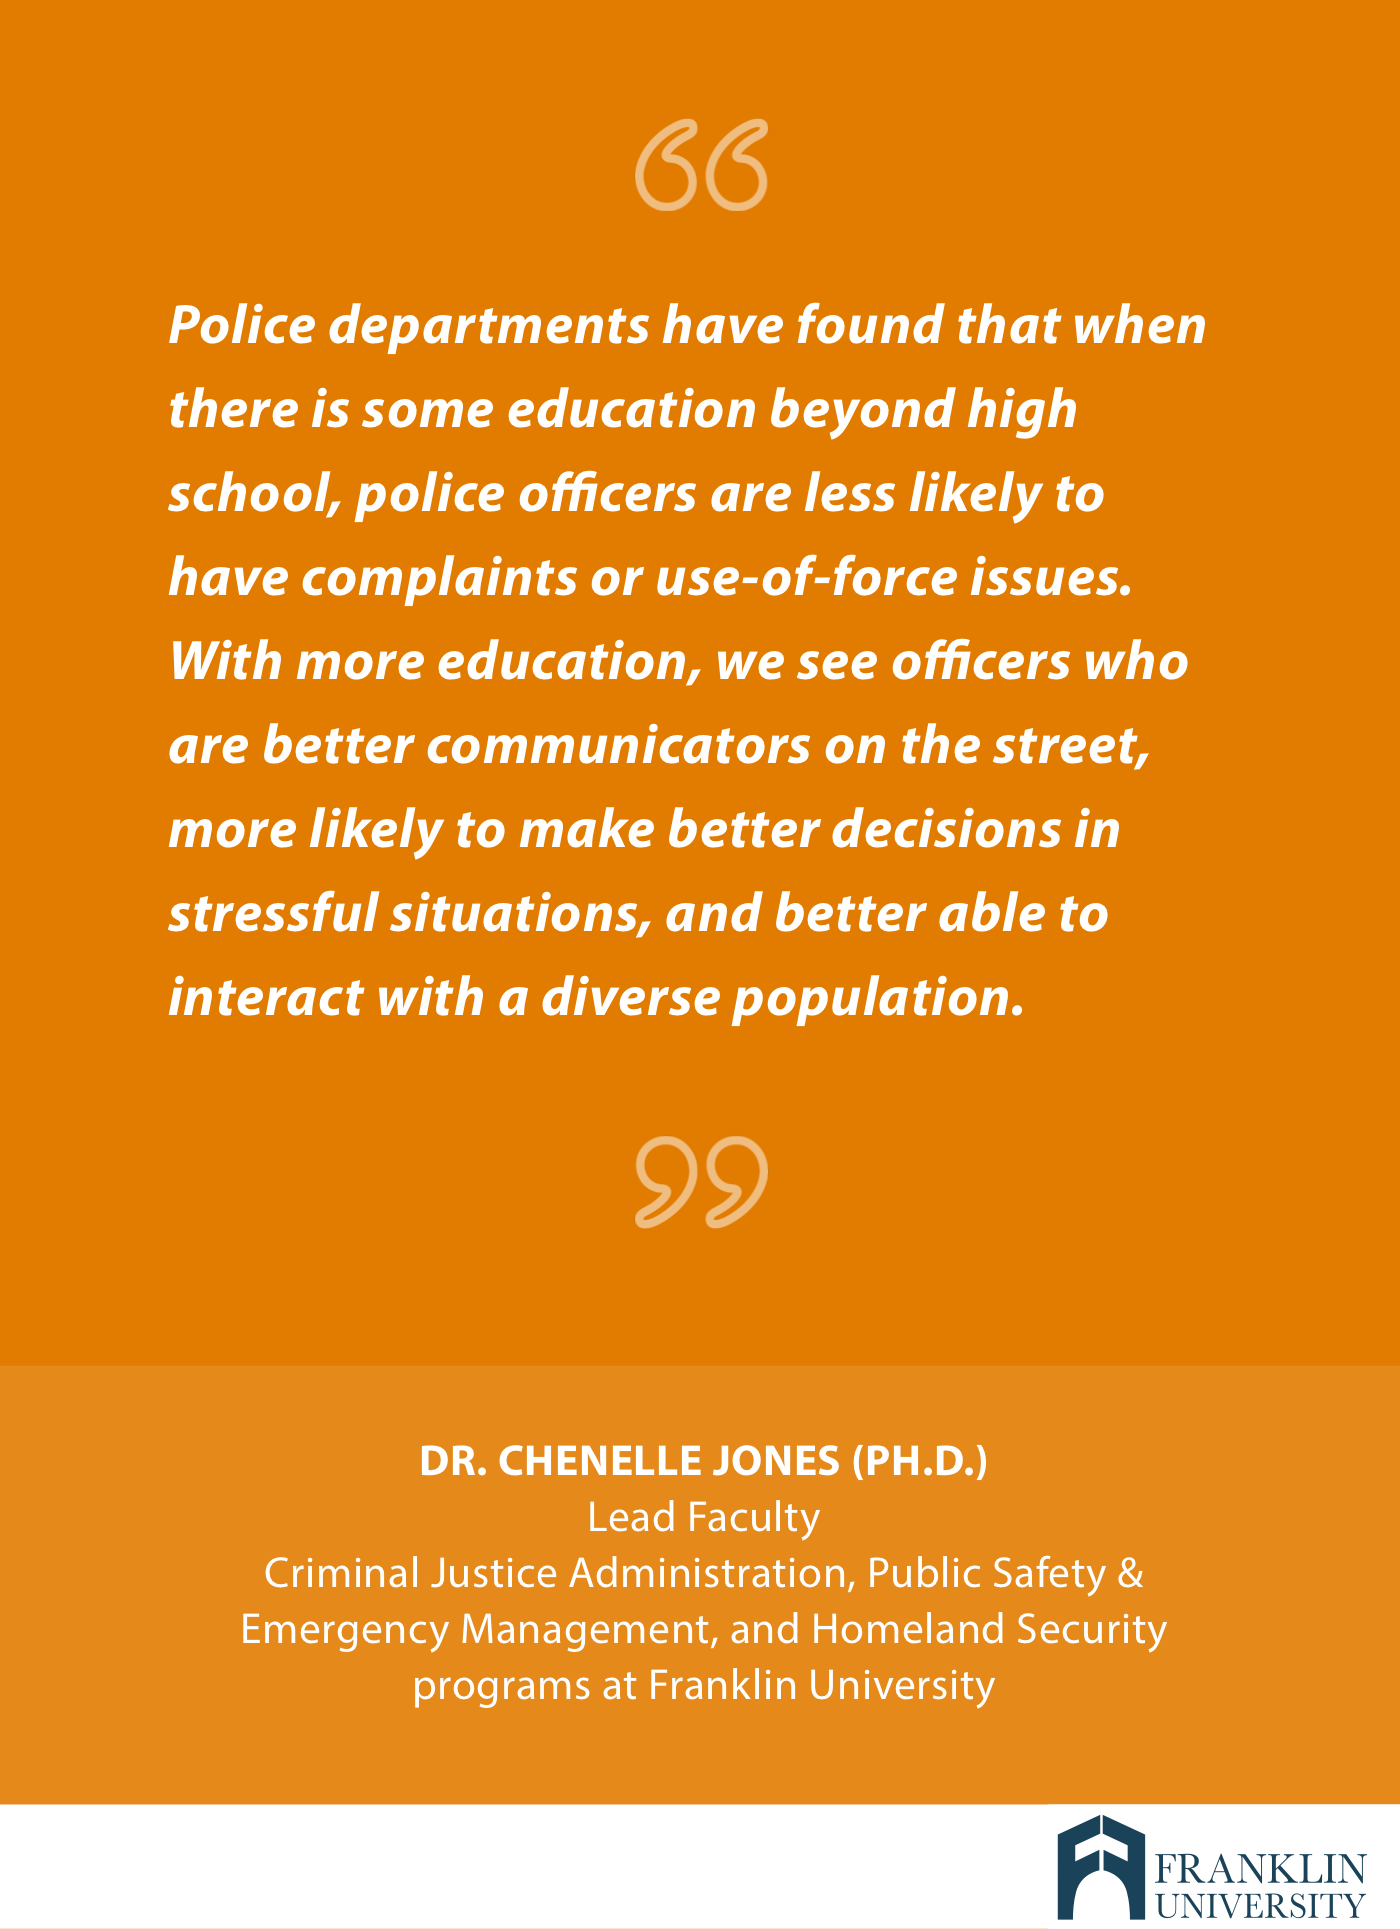 graphic describes a quote stating police officers are able to perform better with higher education